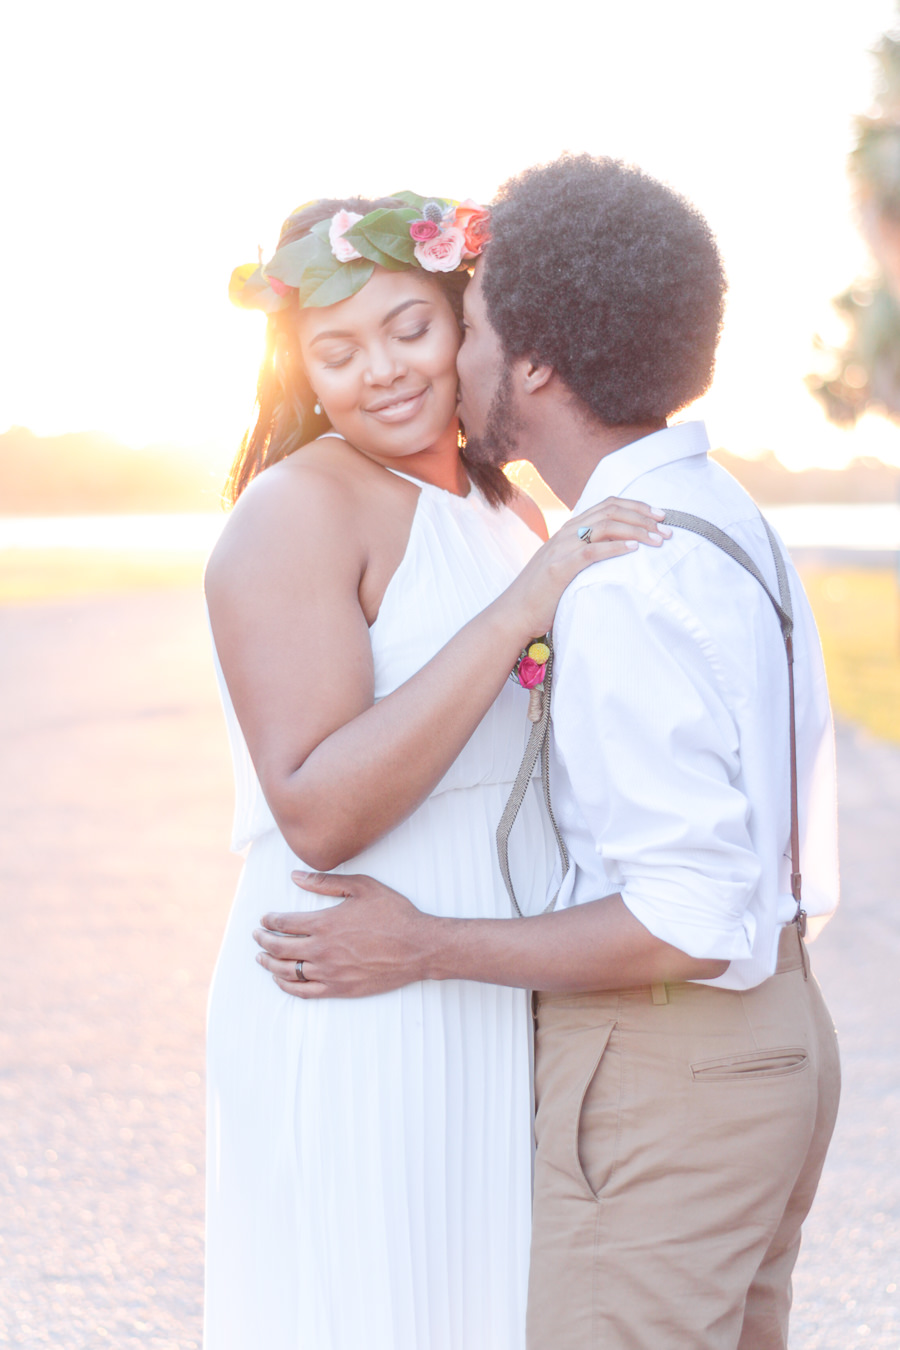 Outdoor Sunset Wedding Bride and Groom Portrait, Groom in Suspenders and Tan Pants in White Cotton Shirt, Bride in Boho Collumn Wedding Dress with Peach and Blush Rose with Greenery Floral Crown Hair Accessory   St Pete Outdoor Wedding Venue Lake Maggiore Park